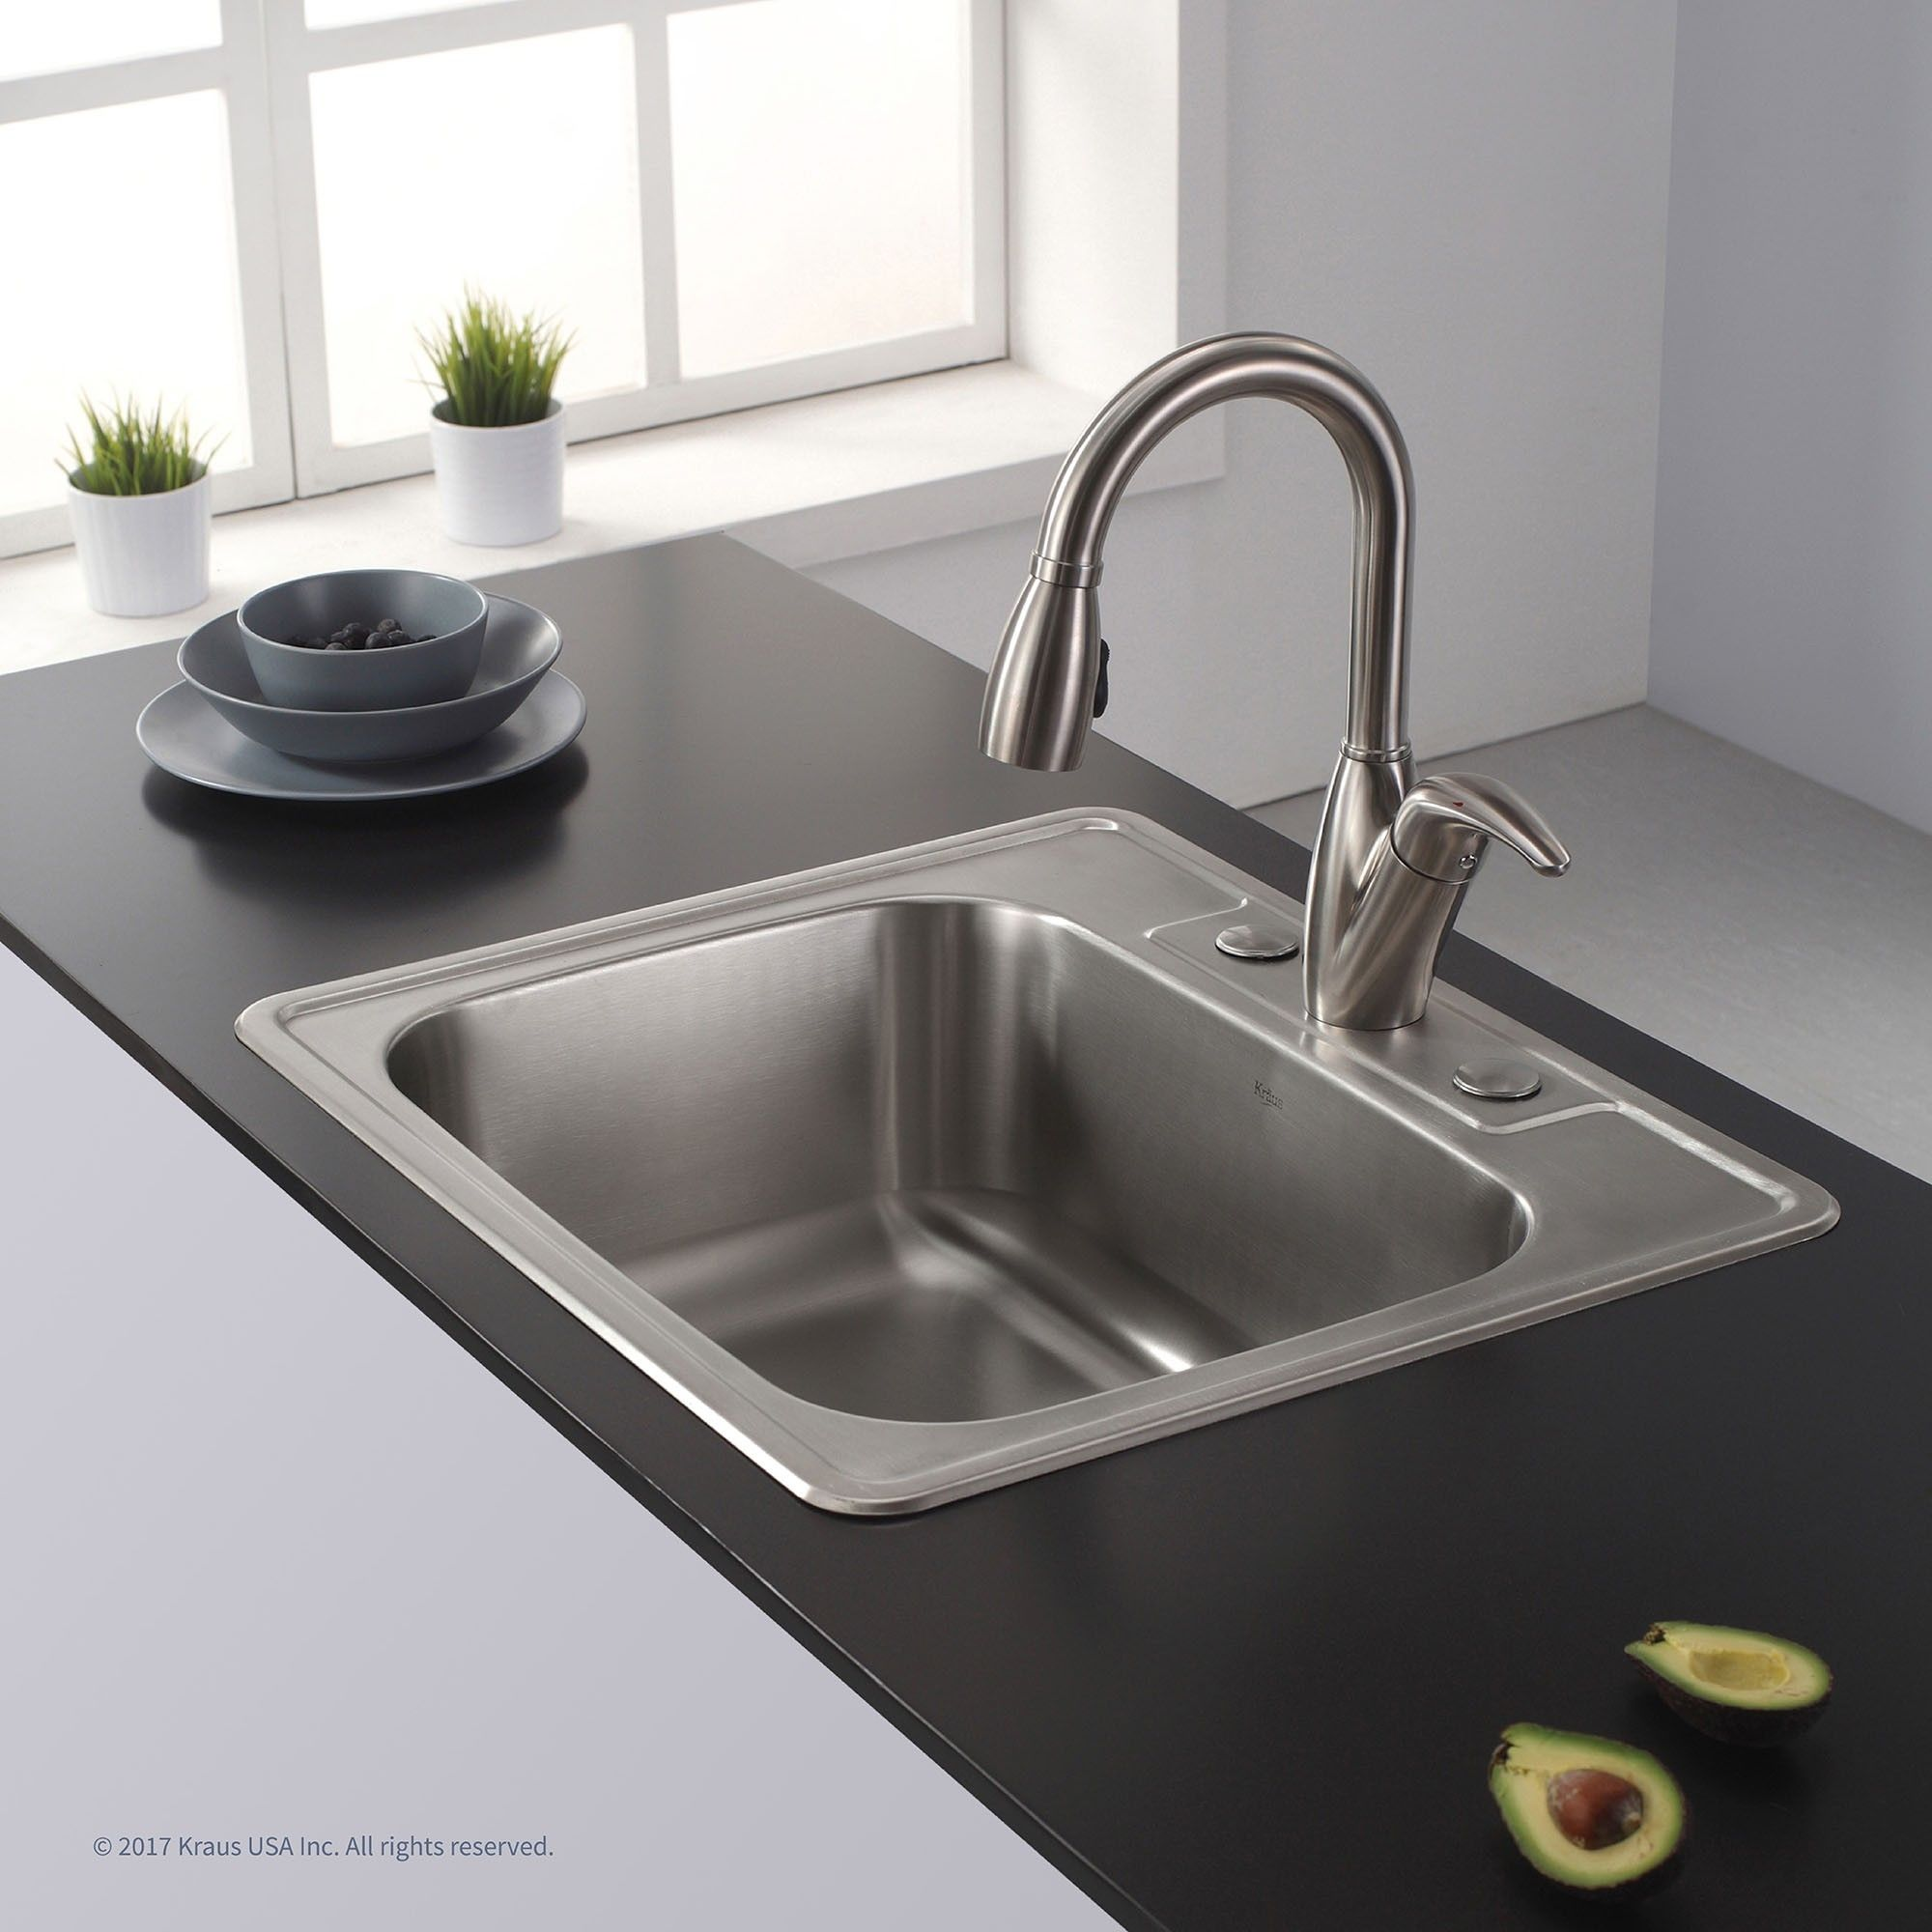 Best Gage For Kitchen Sink